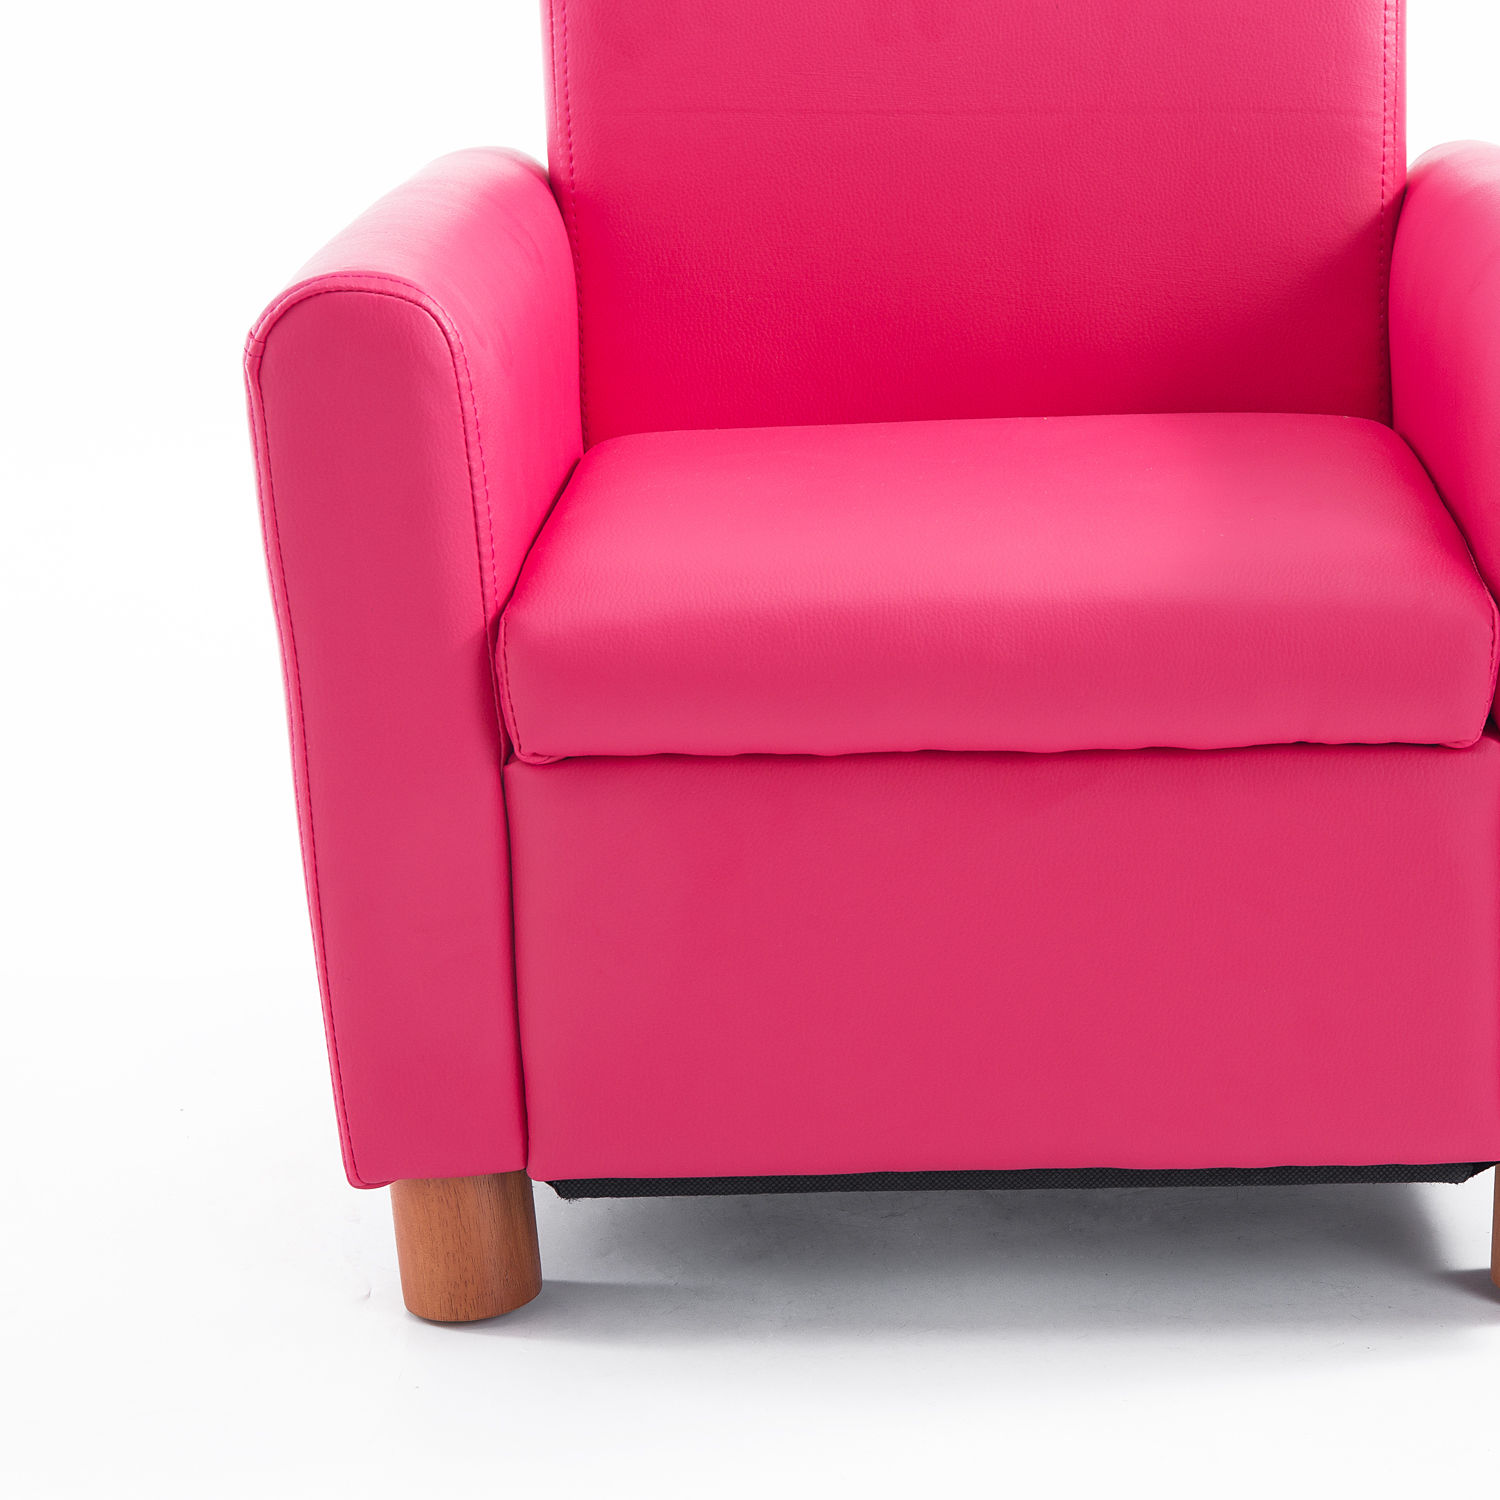 Pink Leather Sofa: Kids Sofa Single PU Leather Armchair Pink Toddler Couch